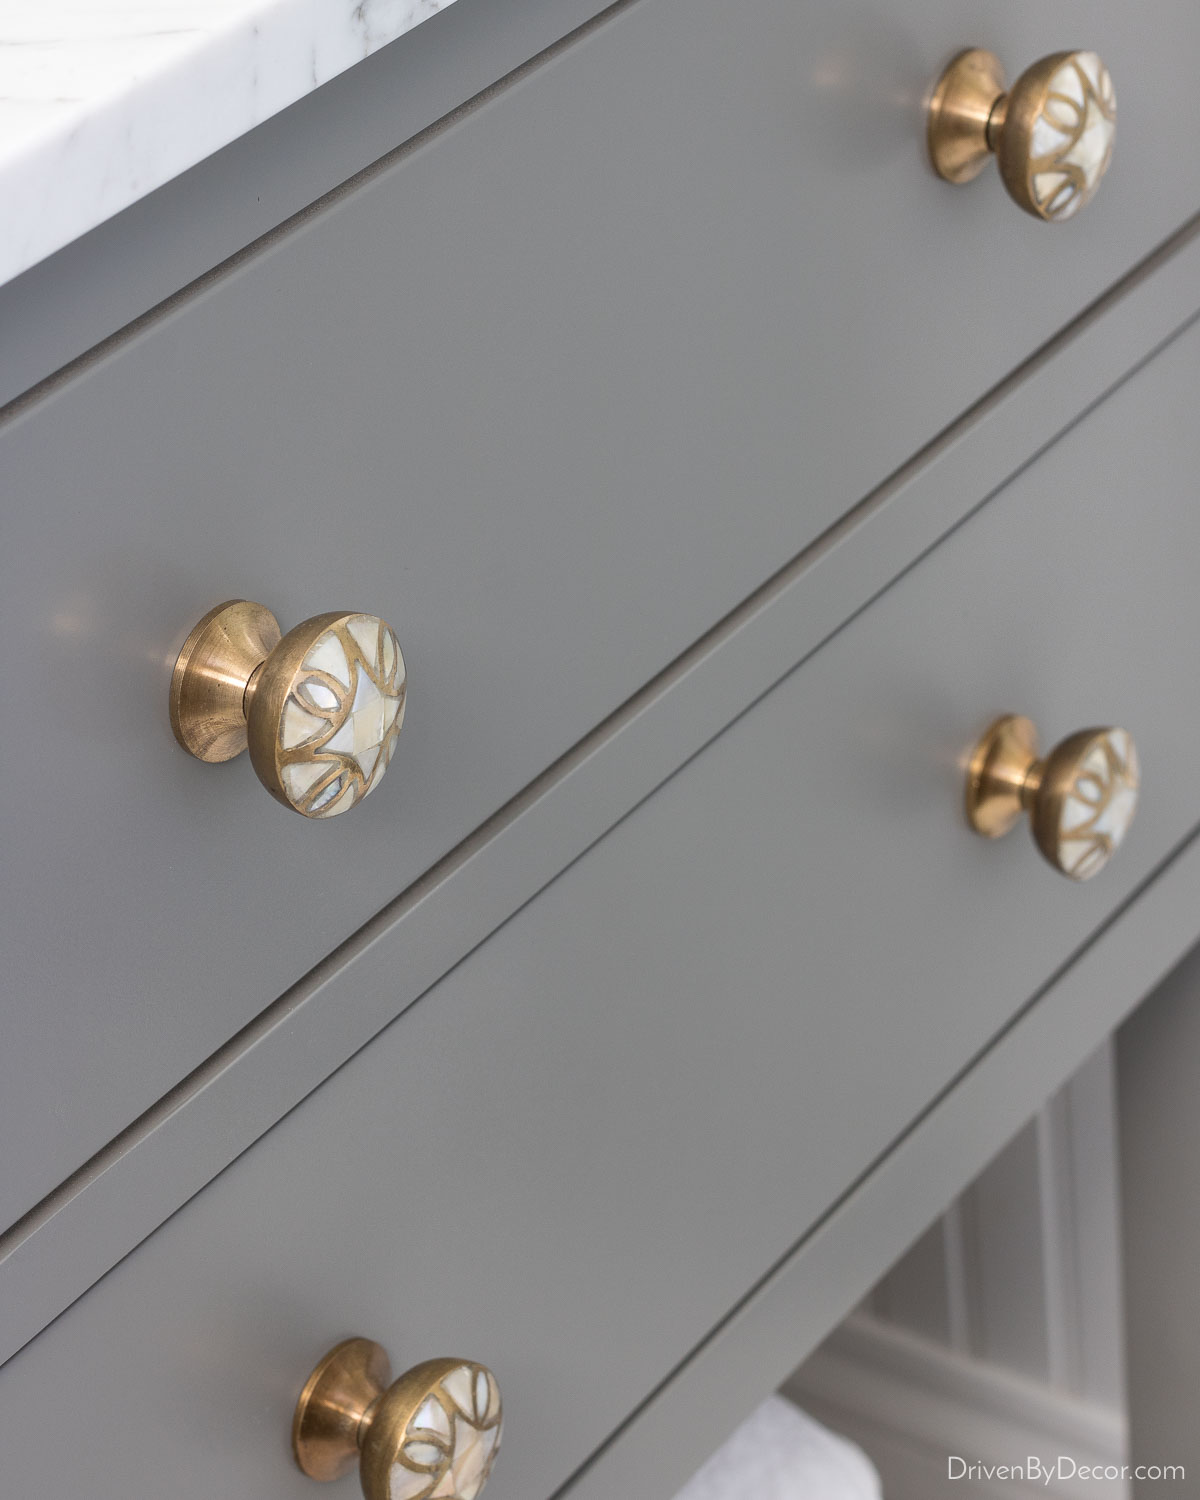 Gorgeous mother of pearl bathroom cabinet knobs